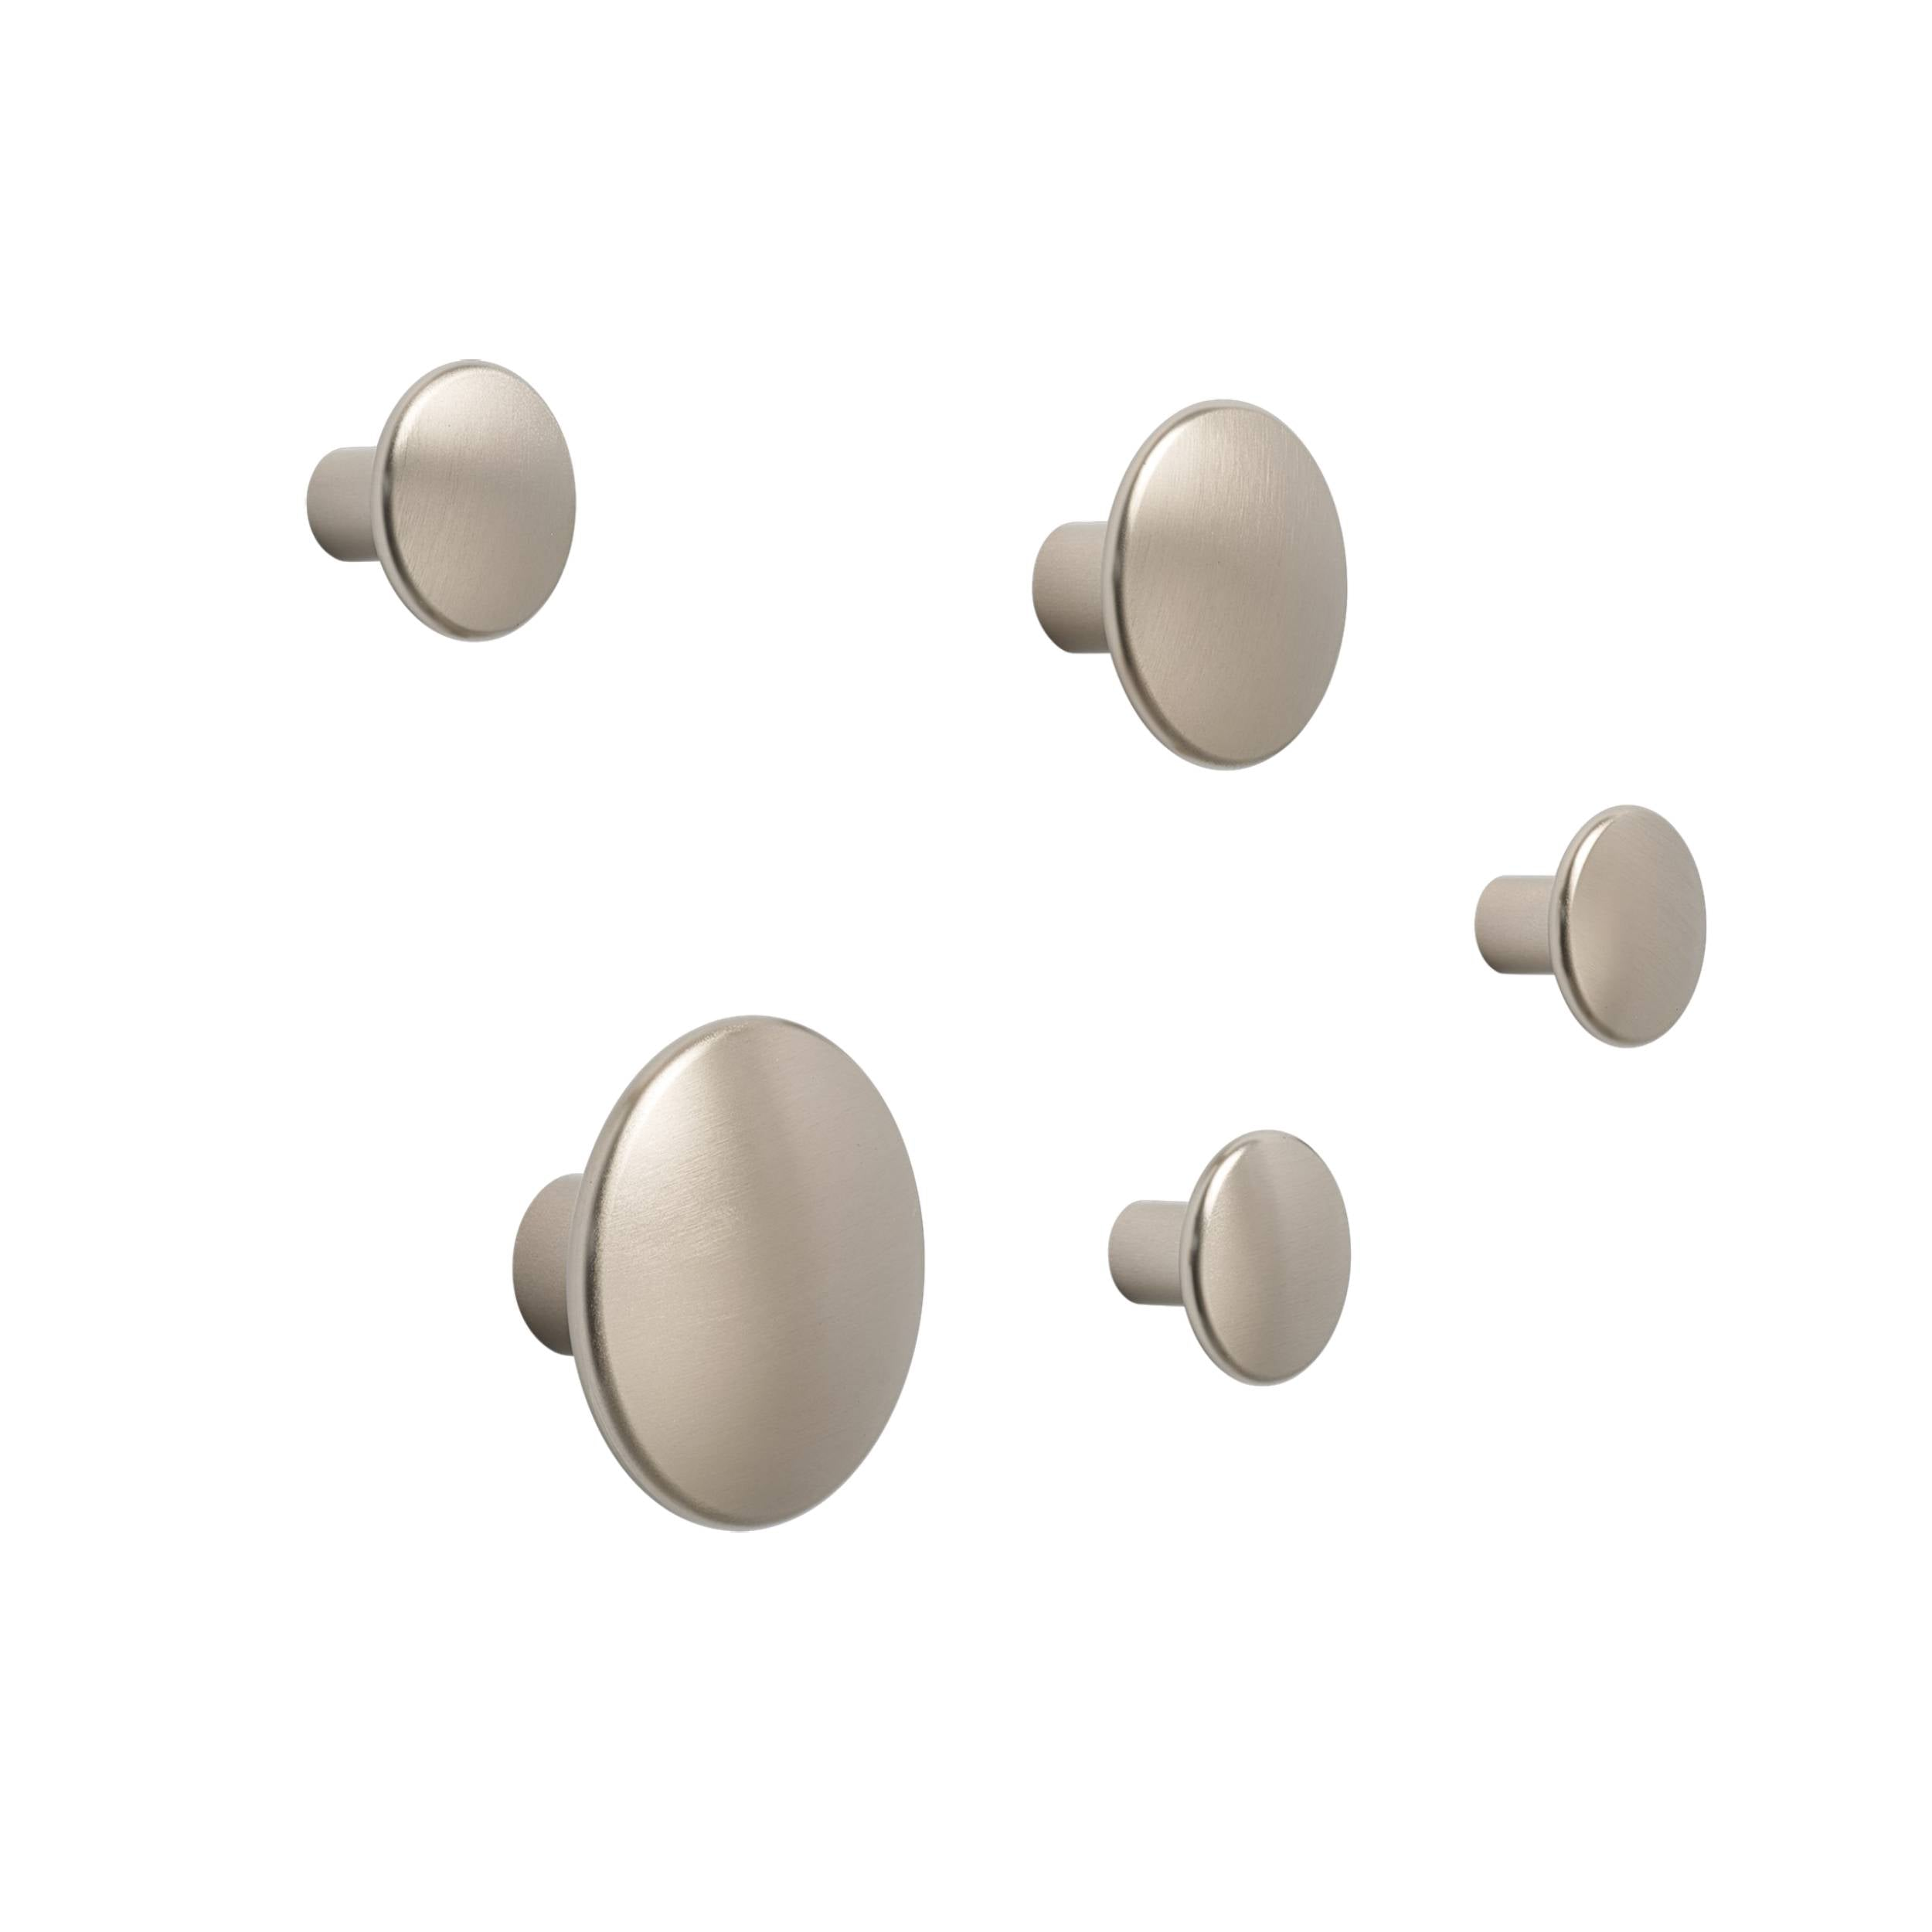 The Dots Metal Coat Hooks: Set of 5 + Taupe